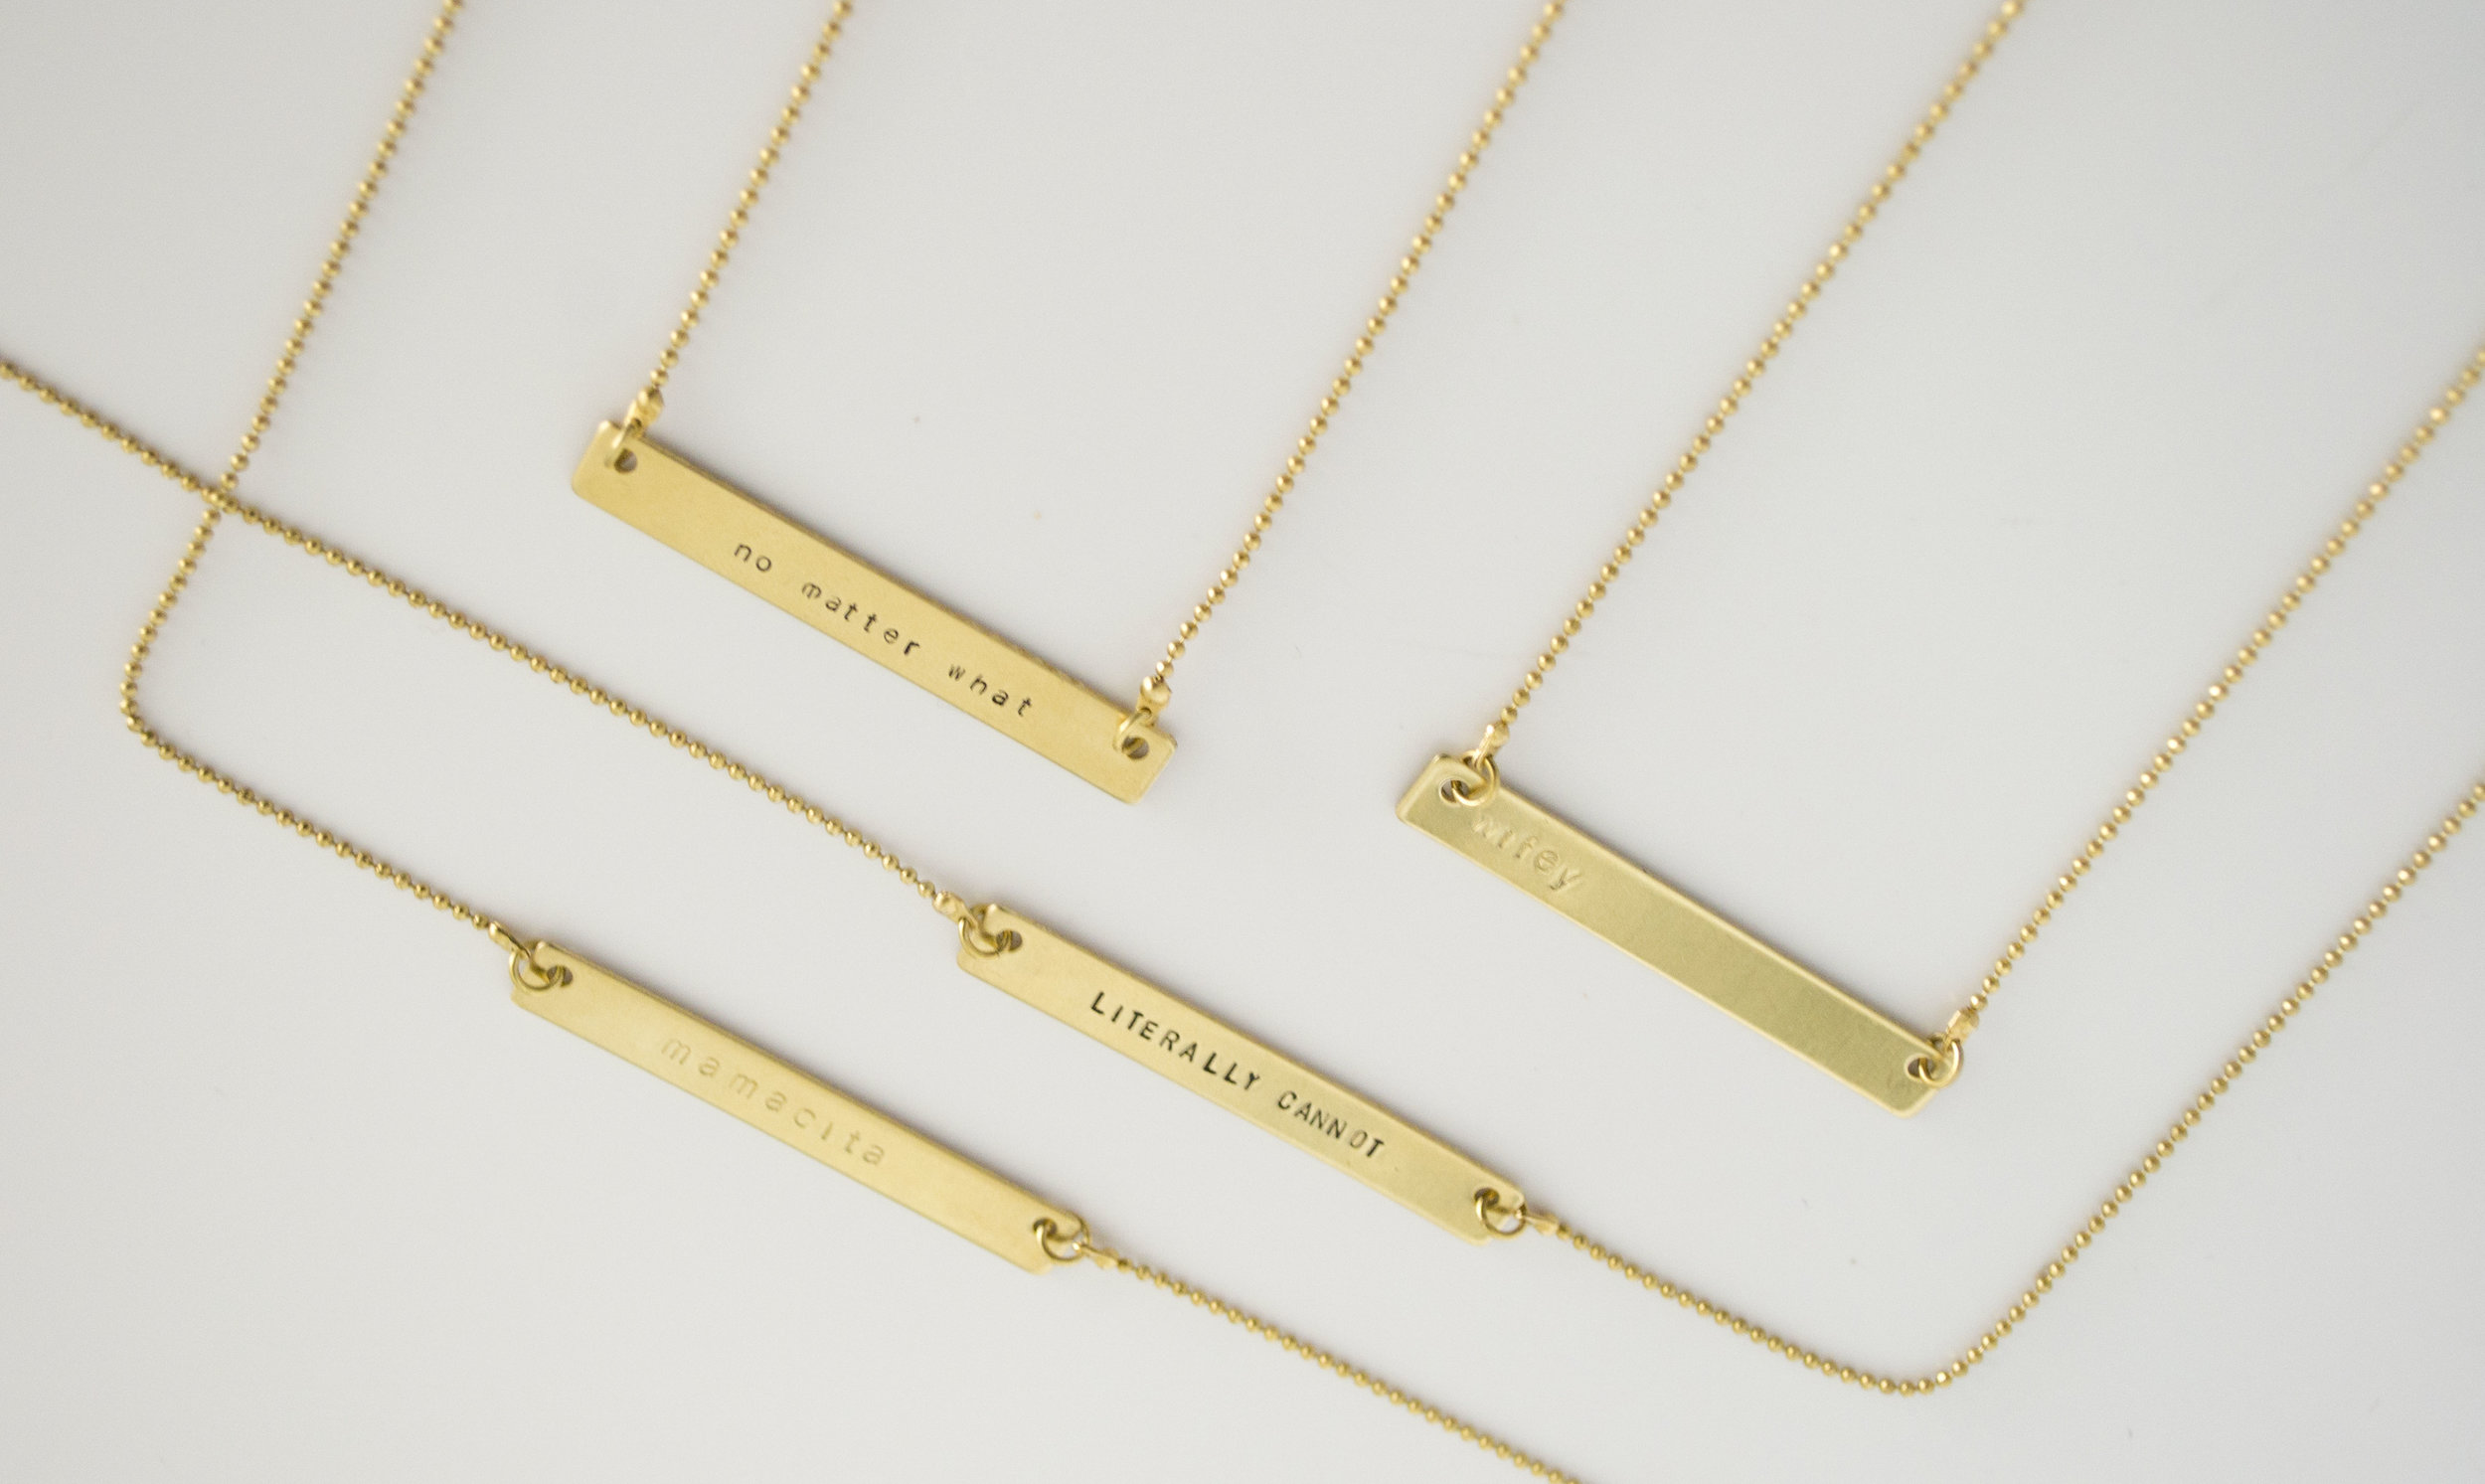 Stamped bar necklaces: mamacita, no matter what, LITERALLY CANNOT, and wifey